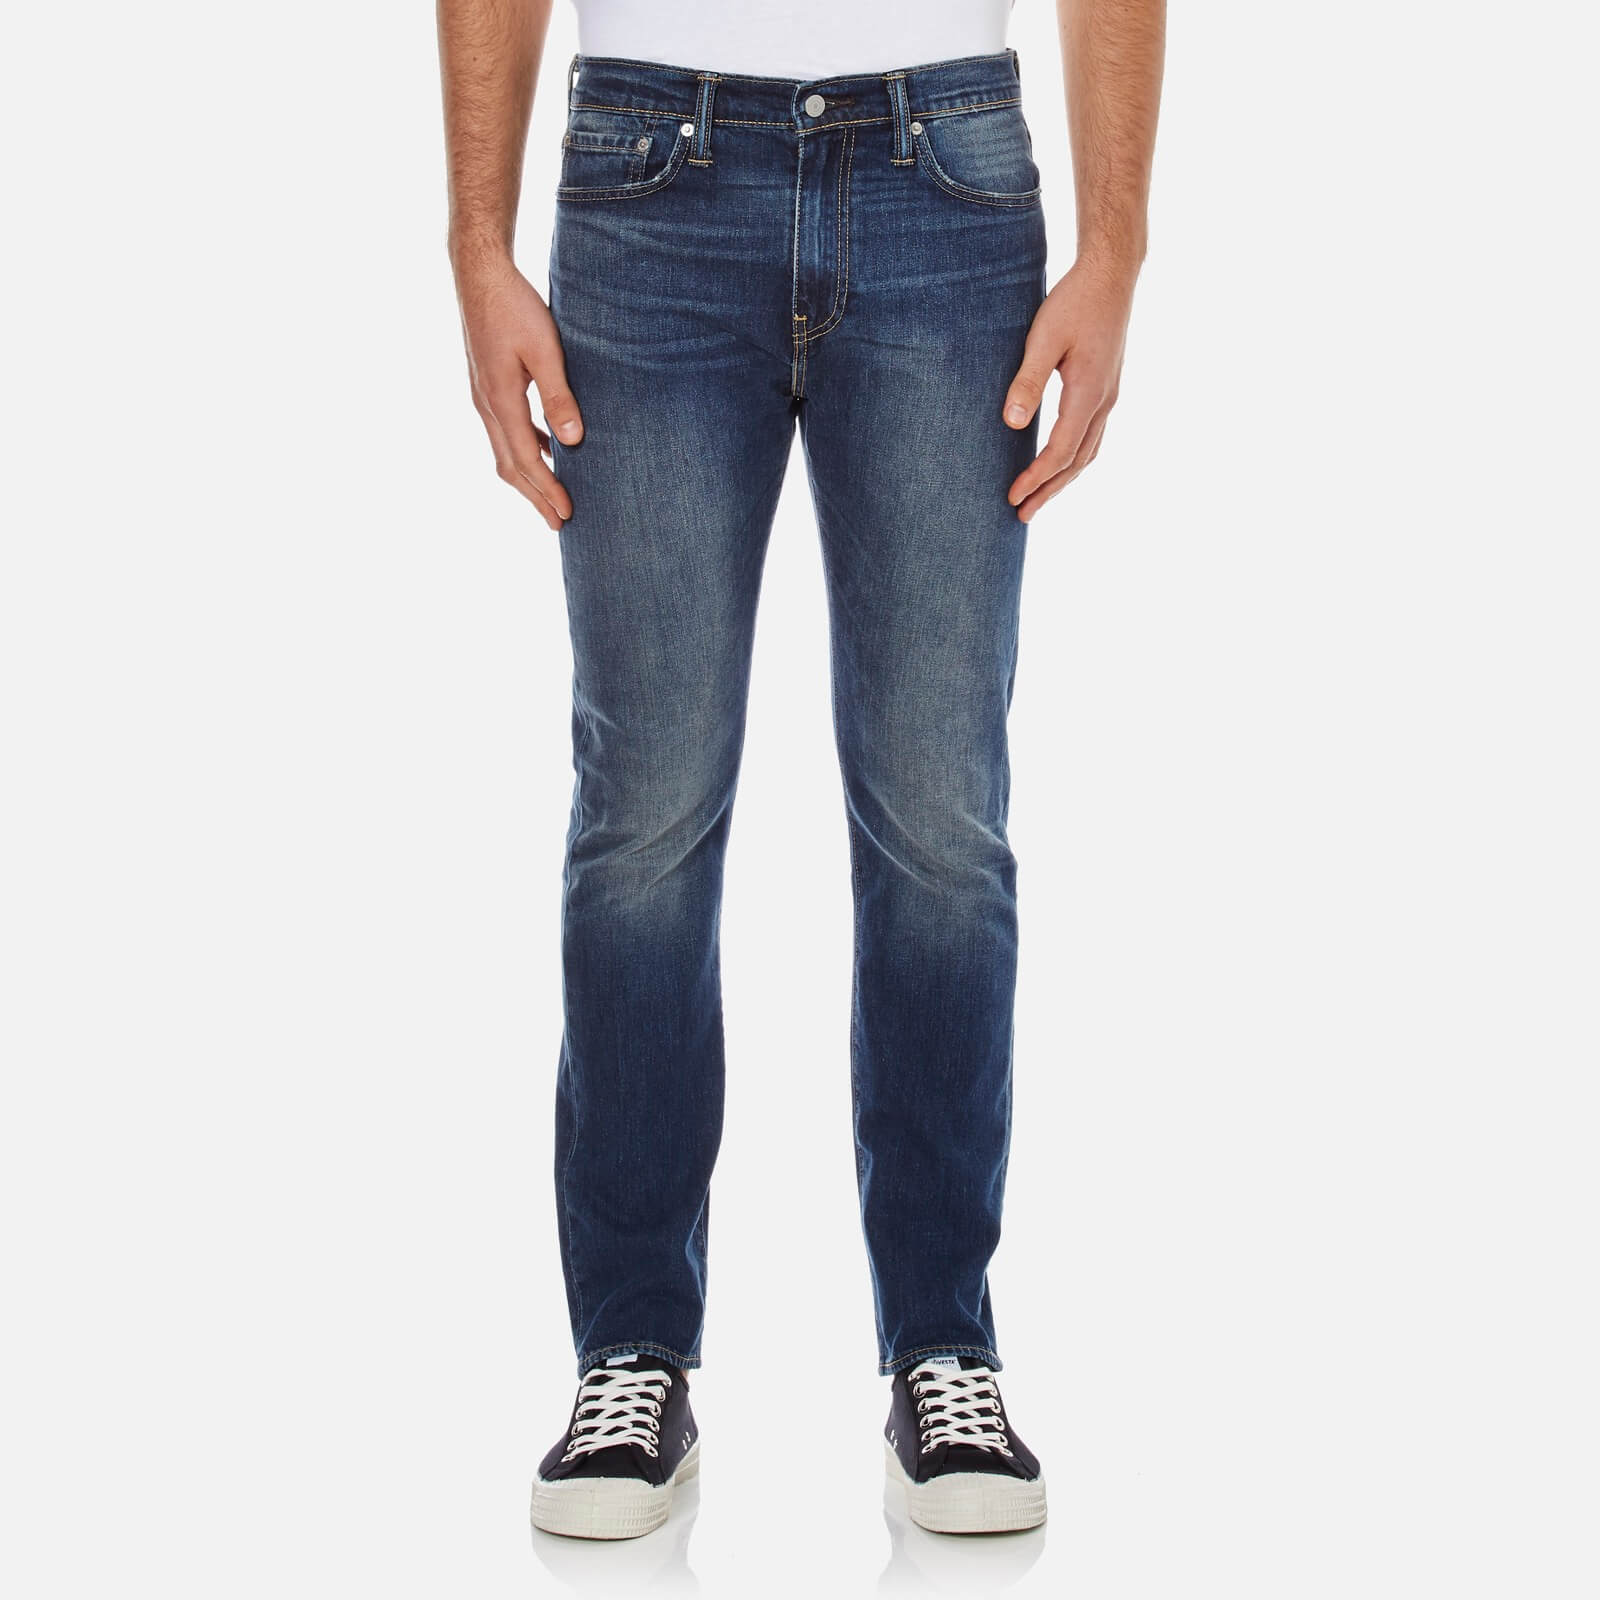 1dfe9bc3 Levi's Men's 510 Skinny Fit Jeans - Blue Canyon - Free UK Delivery over £50